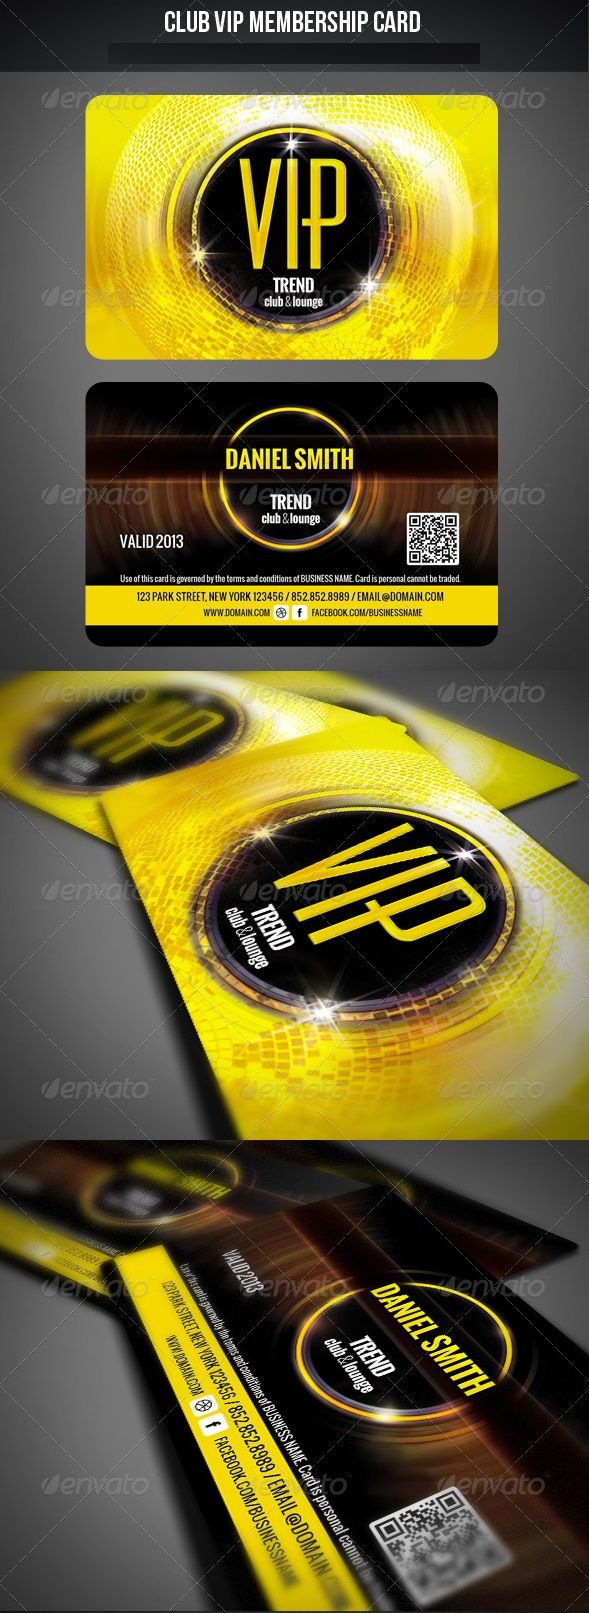 CLUB VIP MEMBERSHIP CARD. Get it customized as per your needs in only $69.00 http://www.devloopers.com/design/cards-and-invites/loyalty-cards/club-vip-membership-card